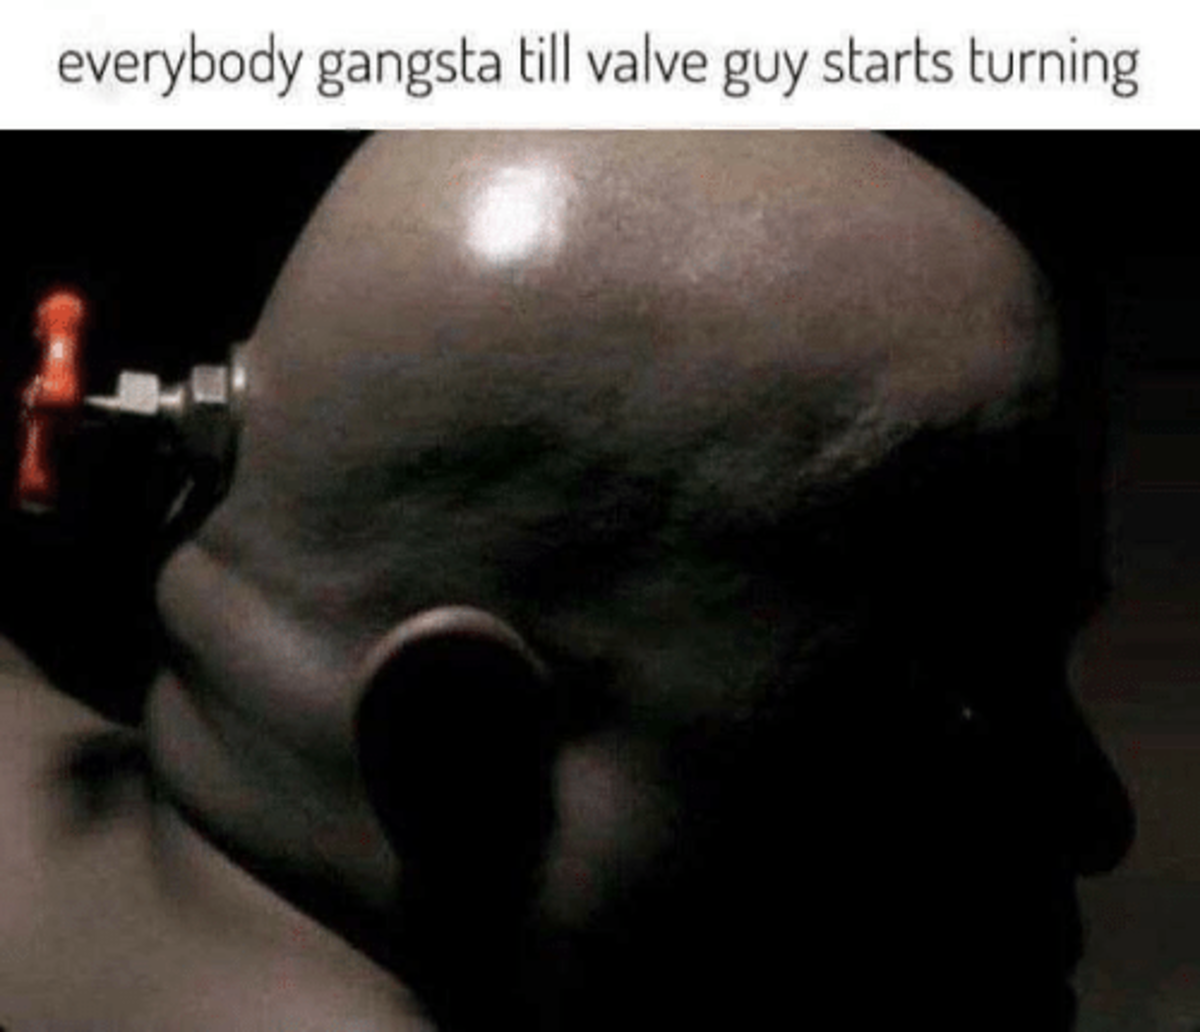 Valve. .. He should be one of the scp monsters, but just a normal dude with a valve on his head.